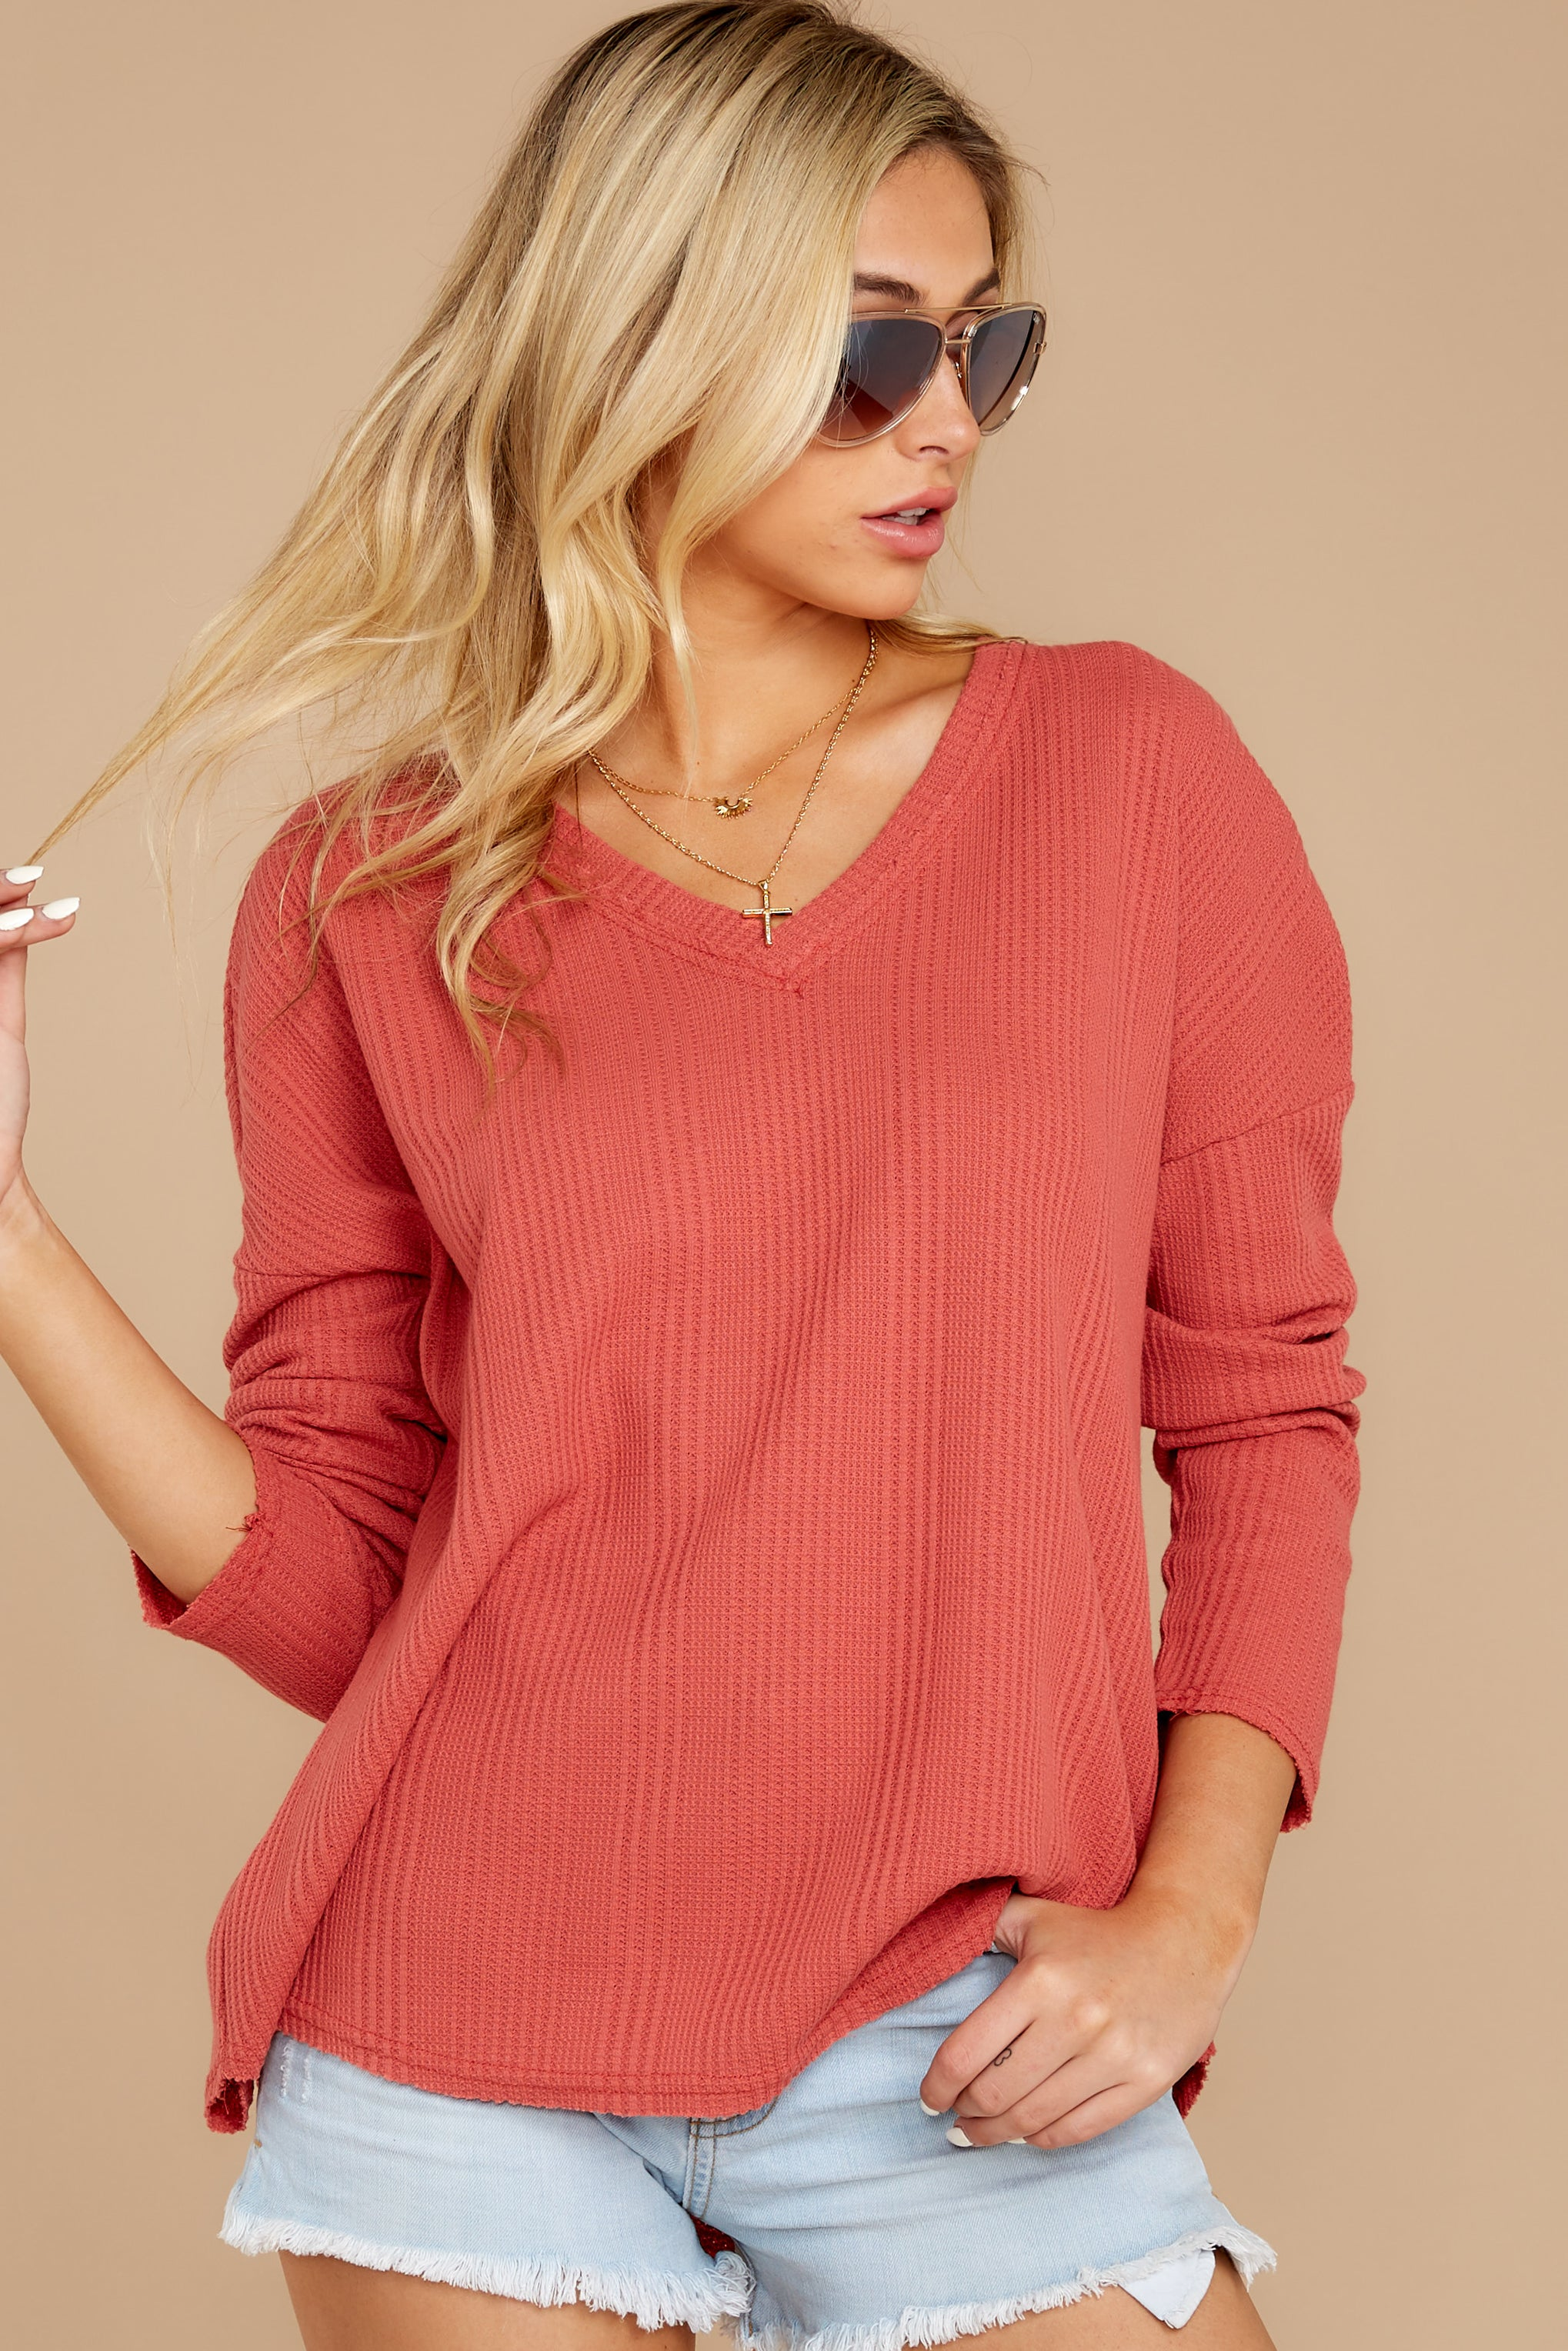 7 Pep Talks Terra Cotta Waffle Knit Top at reddressboutique.com